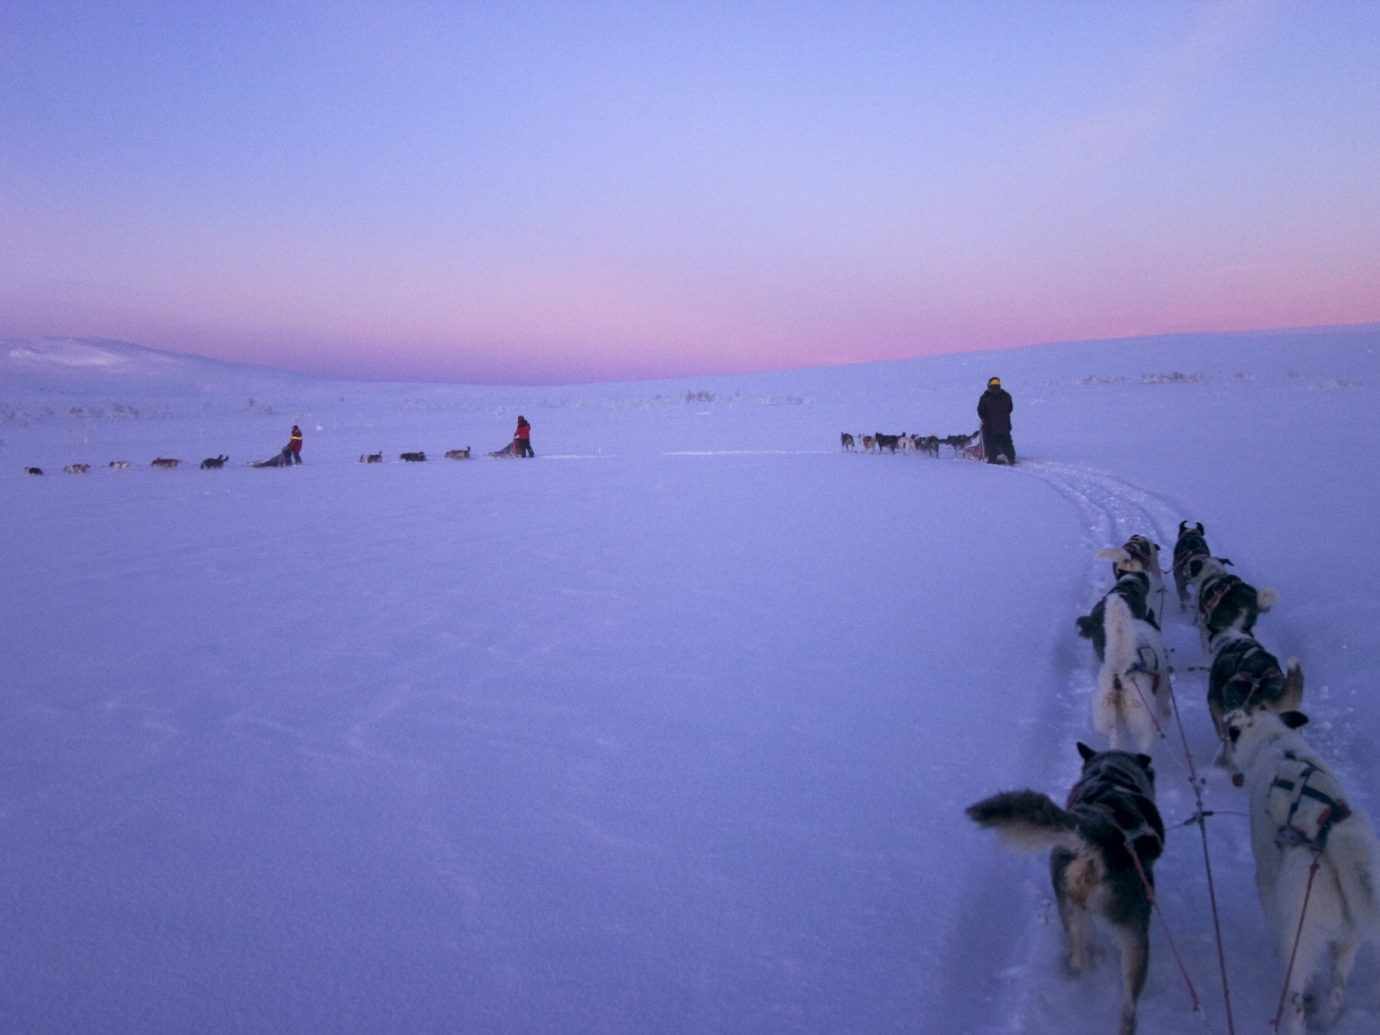 Adventure Trip Ideas sky outdoor snow water Dog Nature arctic weather mountain Winter morning Sea ice Lake shore